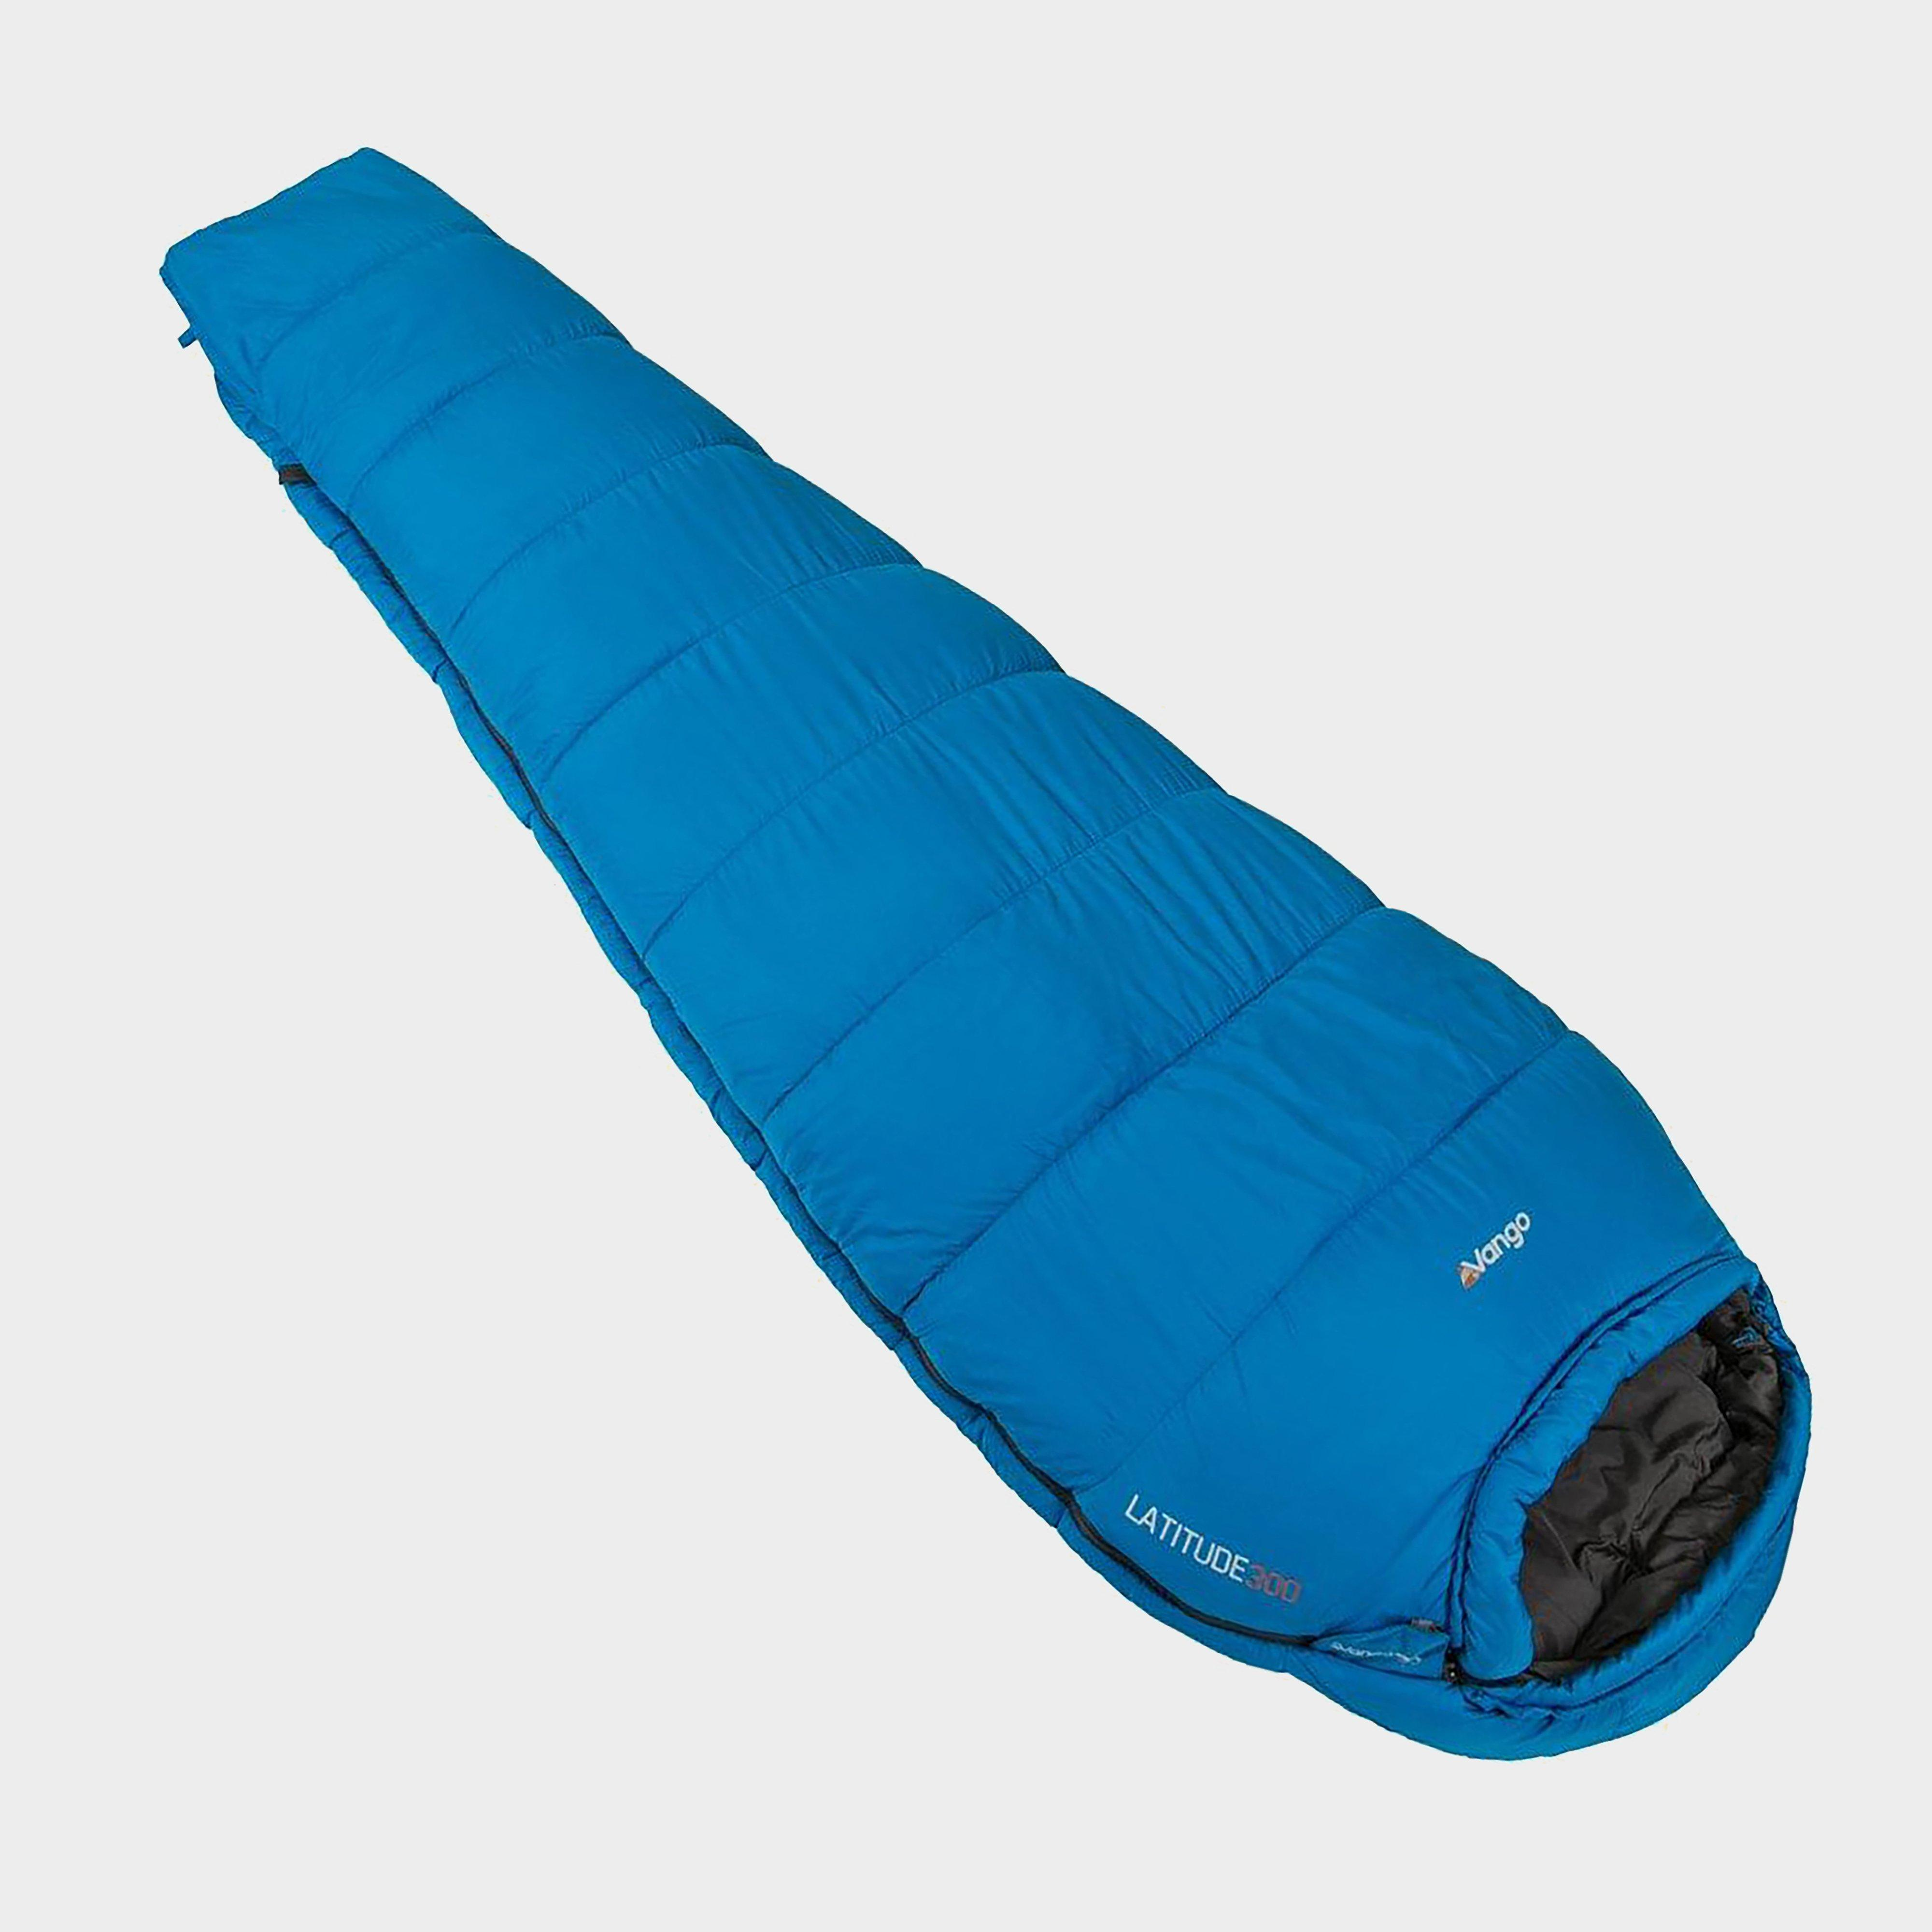 Target Sleeping Bags Vango Sleeping Bag Shop For Cheap Outdoor Adventure And